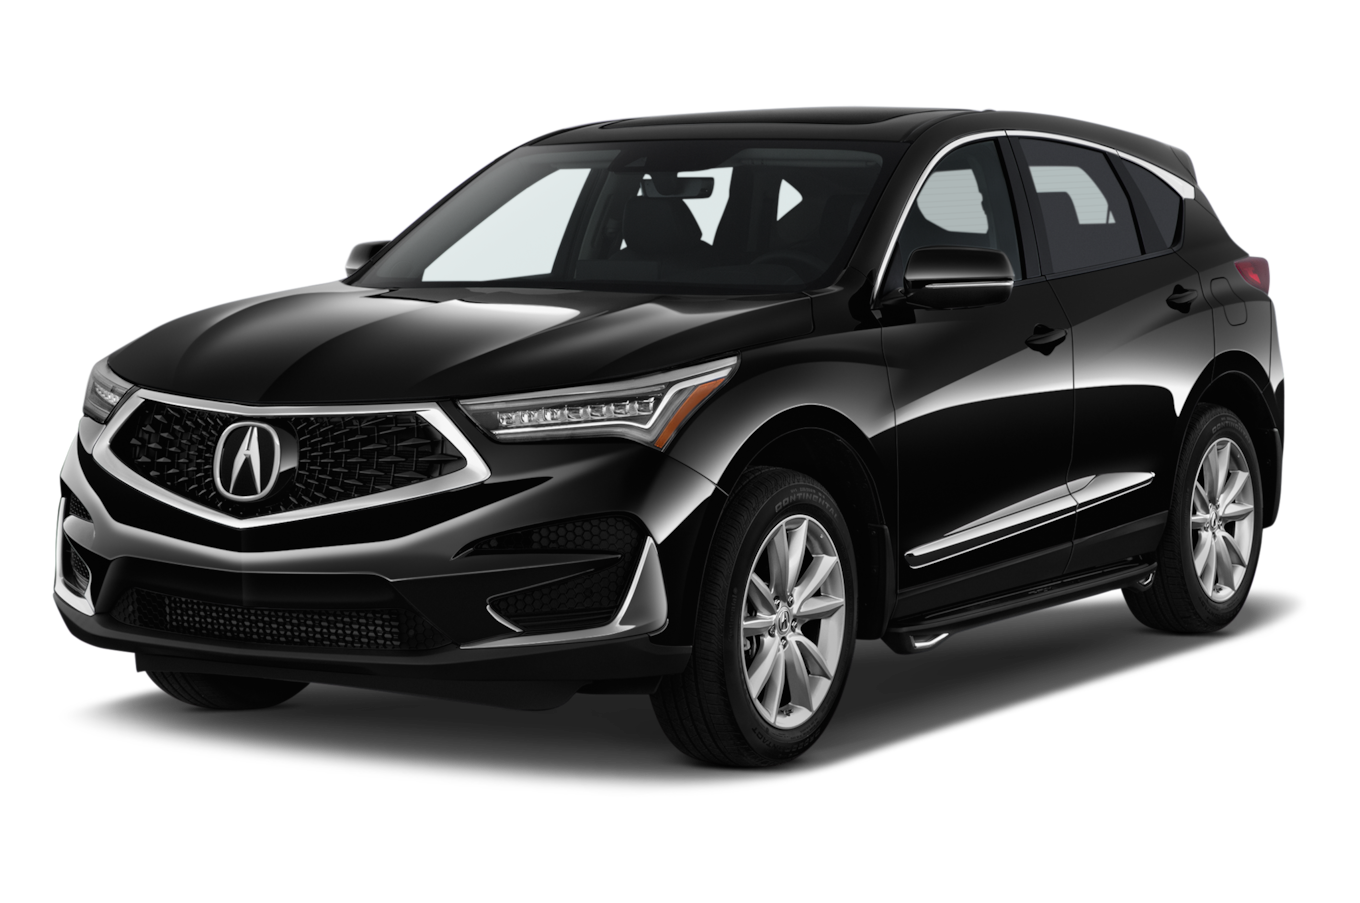 96 Concept of 2019 Acura Zdx Specs by 2019 Acura Zdx